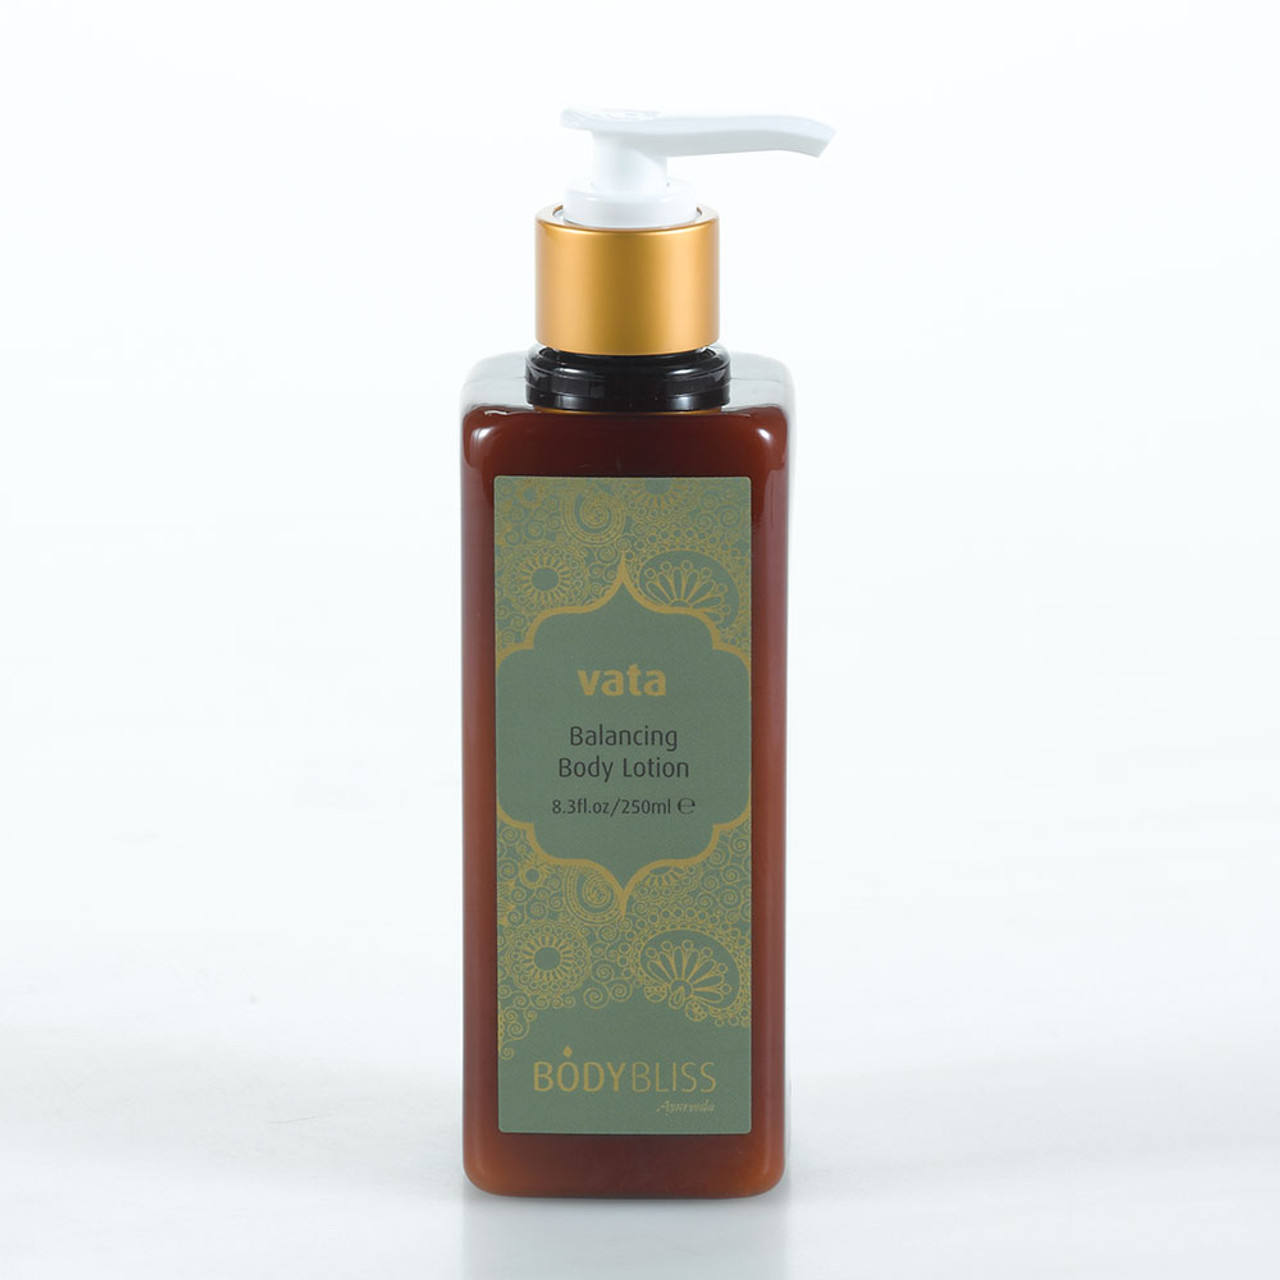 Vata Balancing Body Lotion